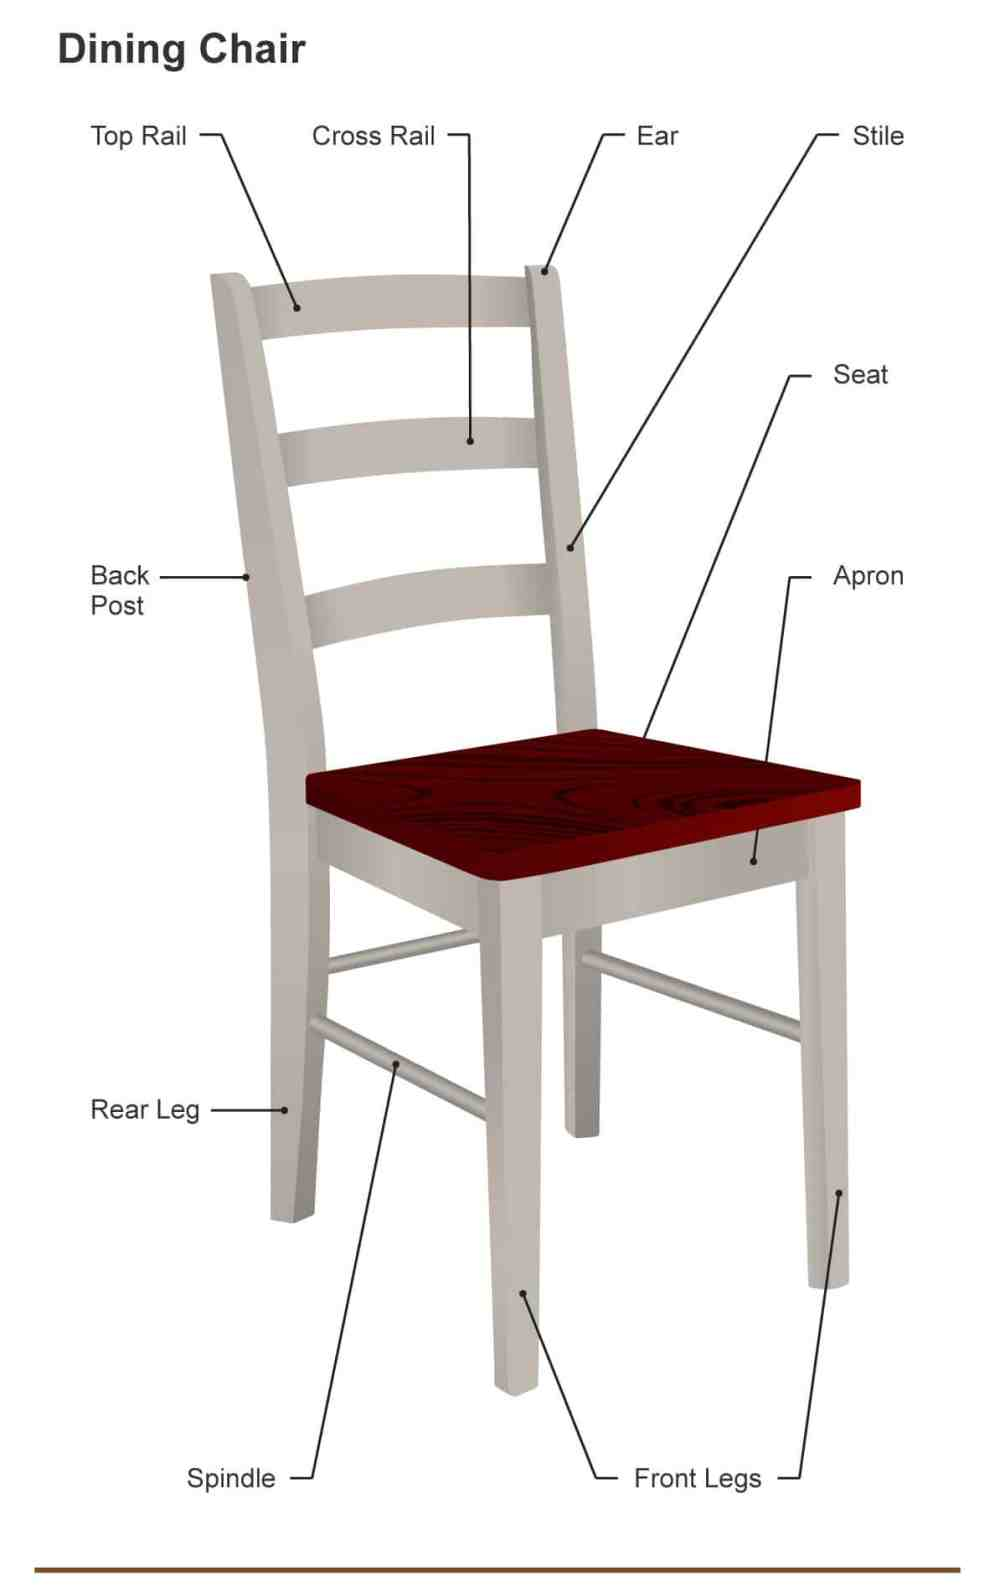 medium resolution of parts of a dining chair diagram